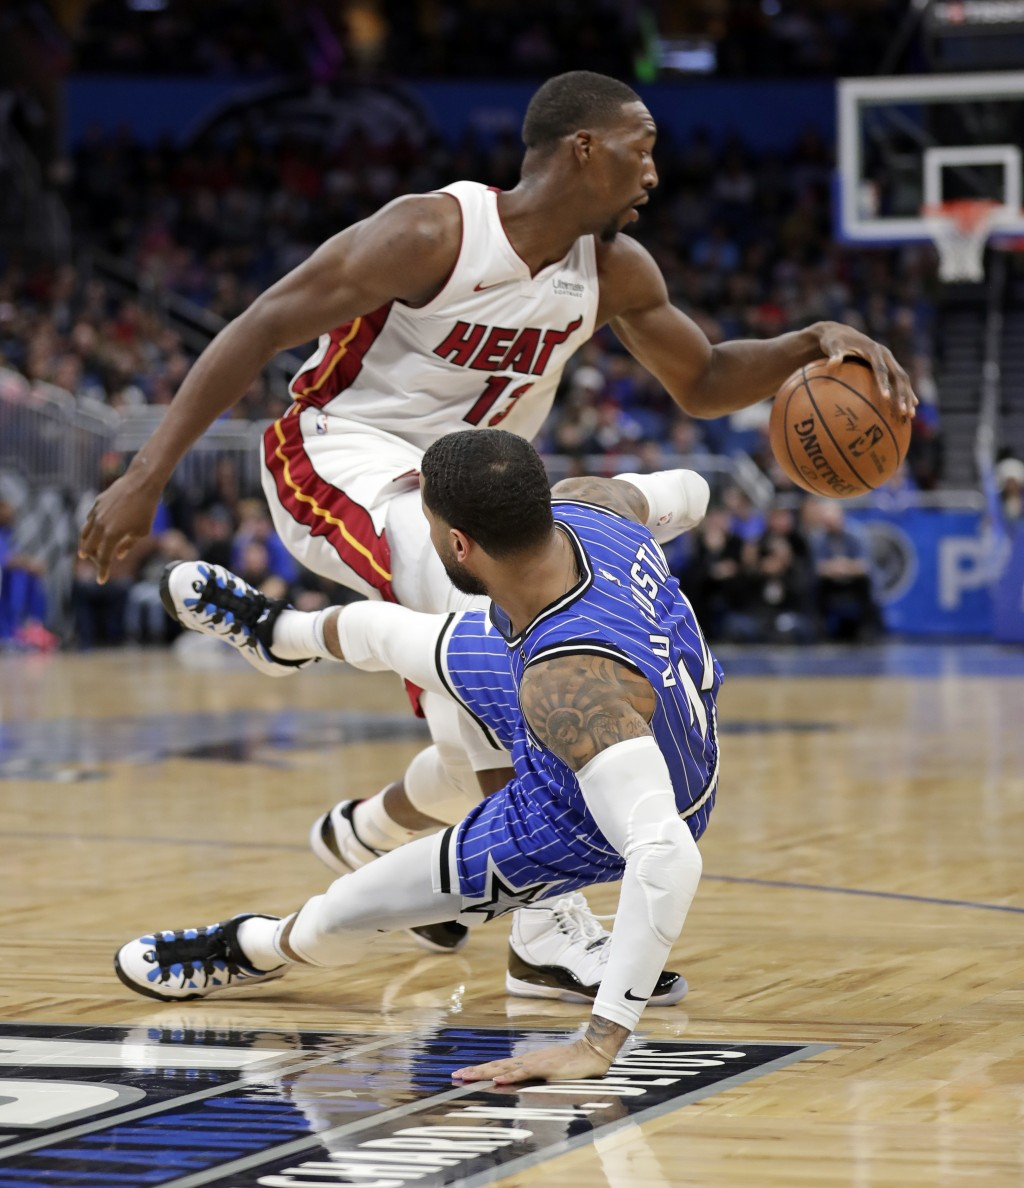 Orlando Magic's D.J. Augustin, right, tumbles backward as he collides with Miami Heat's Bam Adebayo during the first half of an NBA basketball game, S...